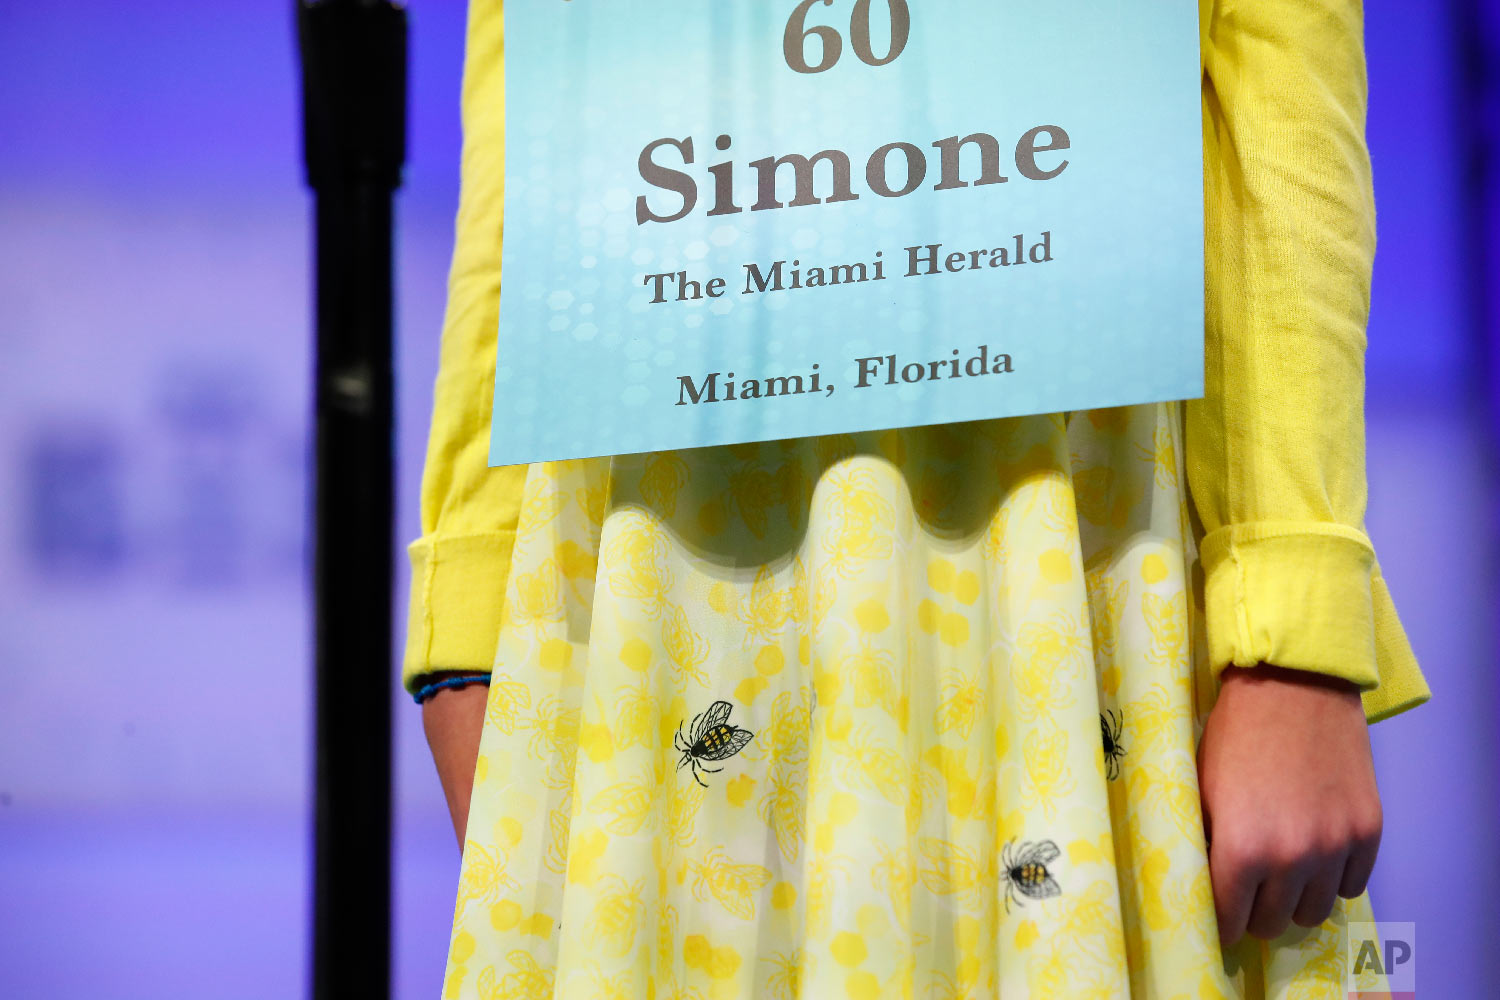 Simone Kaplan, 12, from Davie, Fla., wears a dress with bees on it during the 2nd Round of the Scripps National Spelling Bee, Tuesday, May 29, 2018, in Oxon Hill, Md. (AP Photo/Alex Brandon)